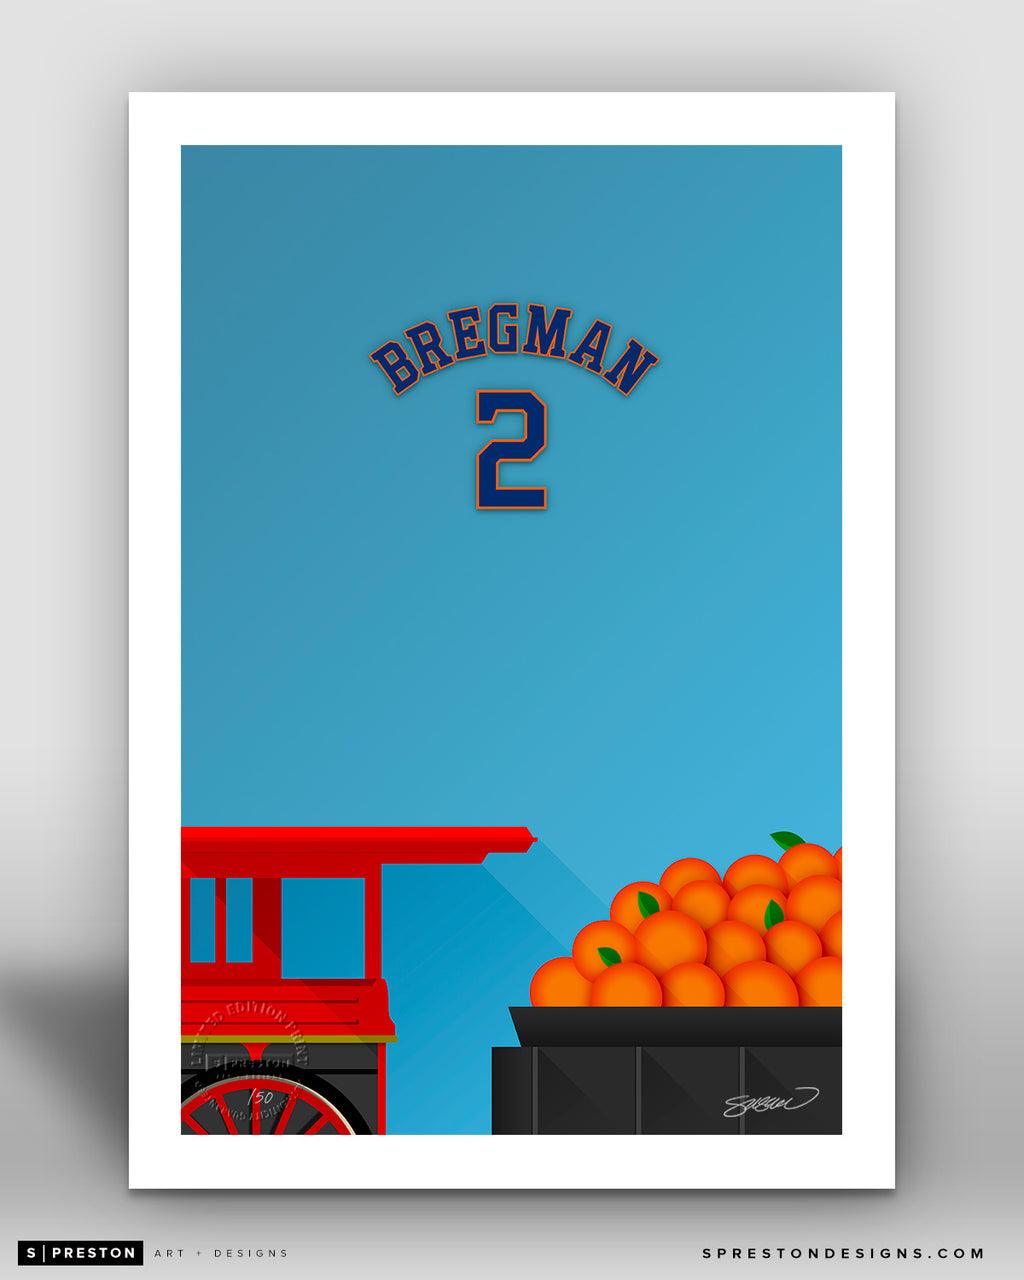 Minimalist Minute Maid Park - Player Series - Alex Bregman